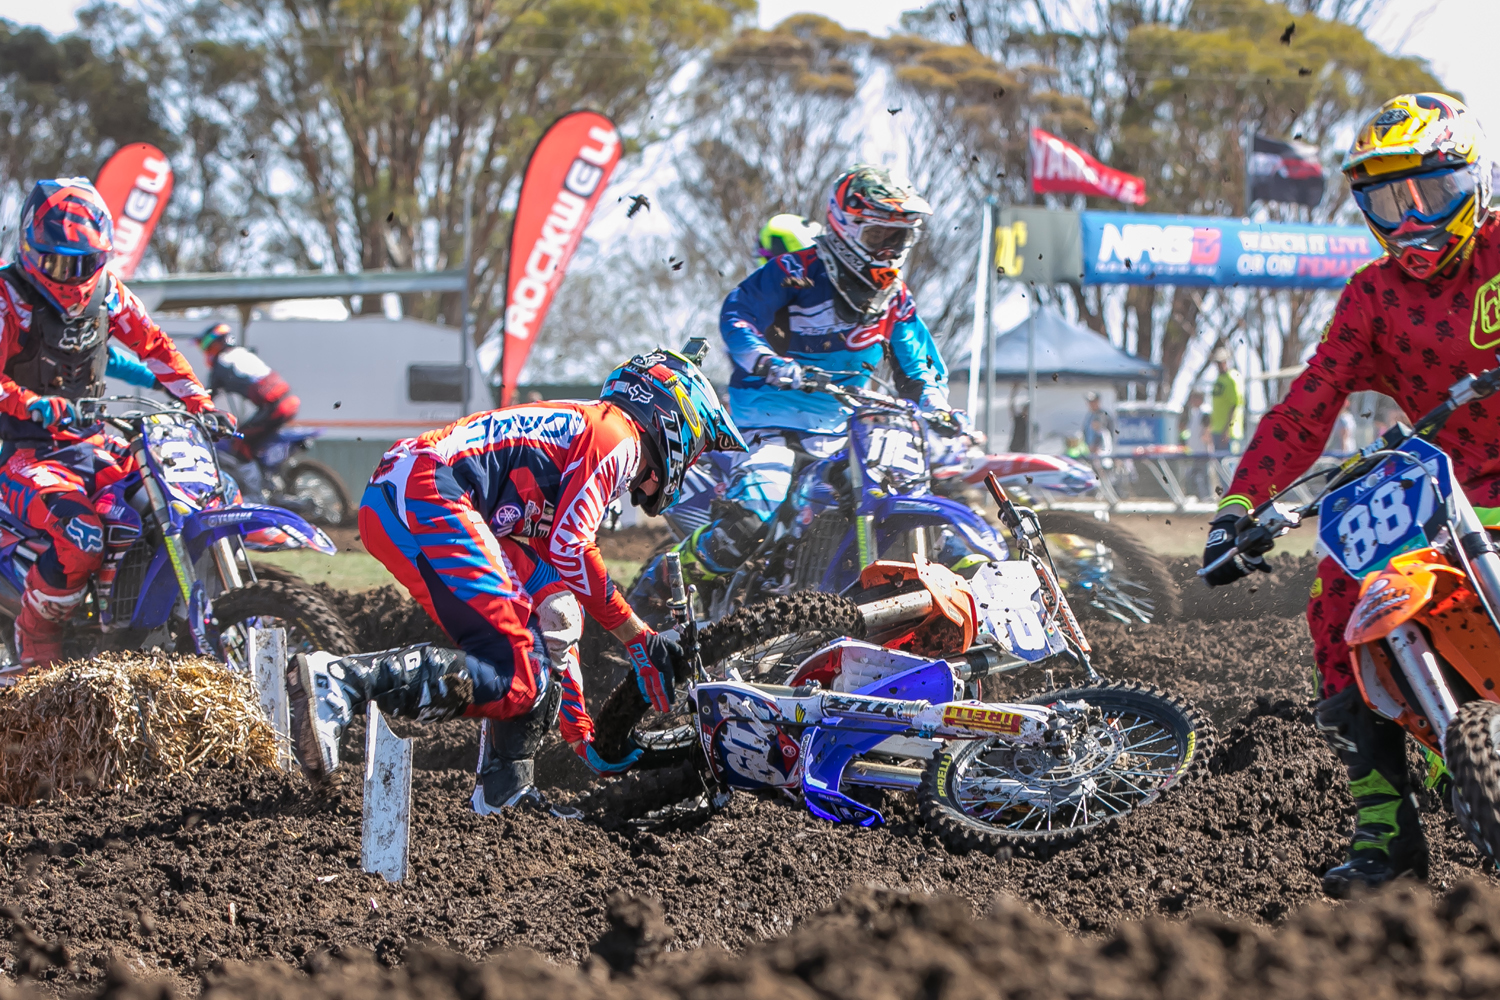 2016 MX Nationals - Dirt Action